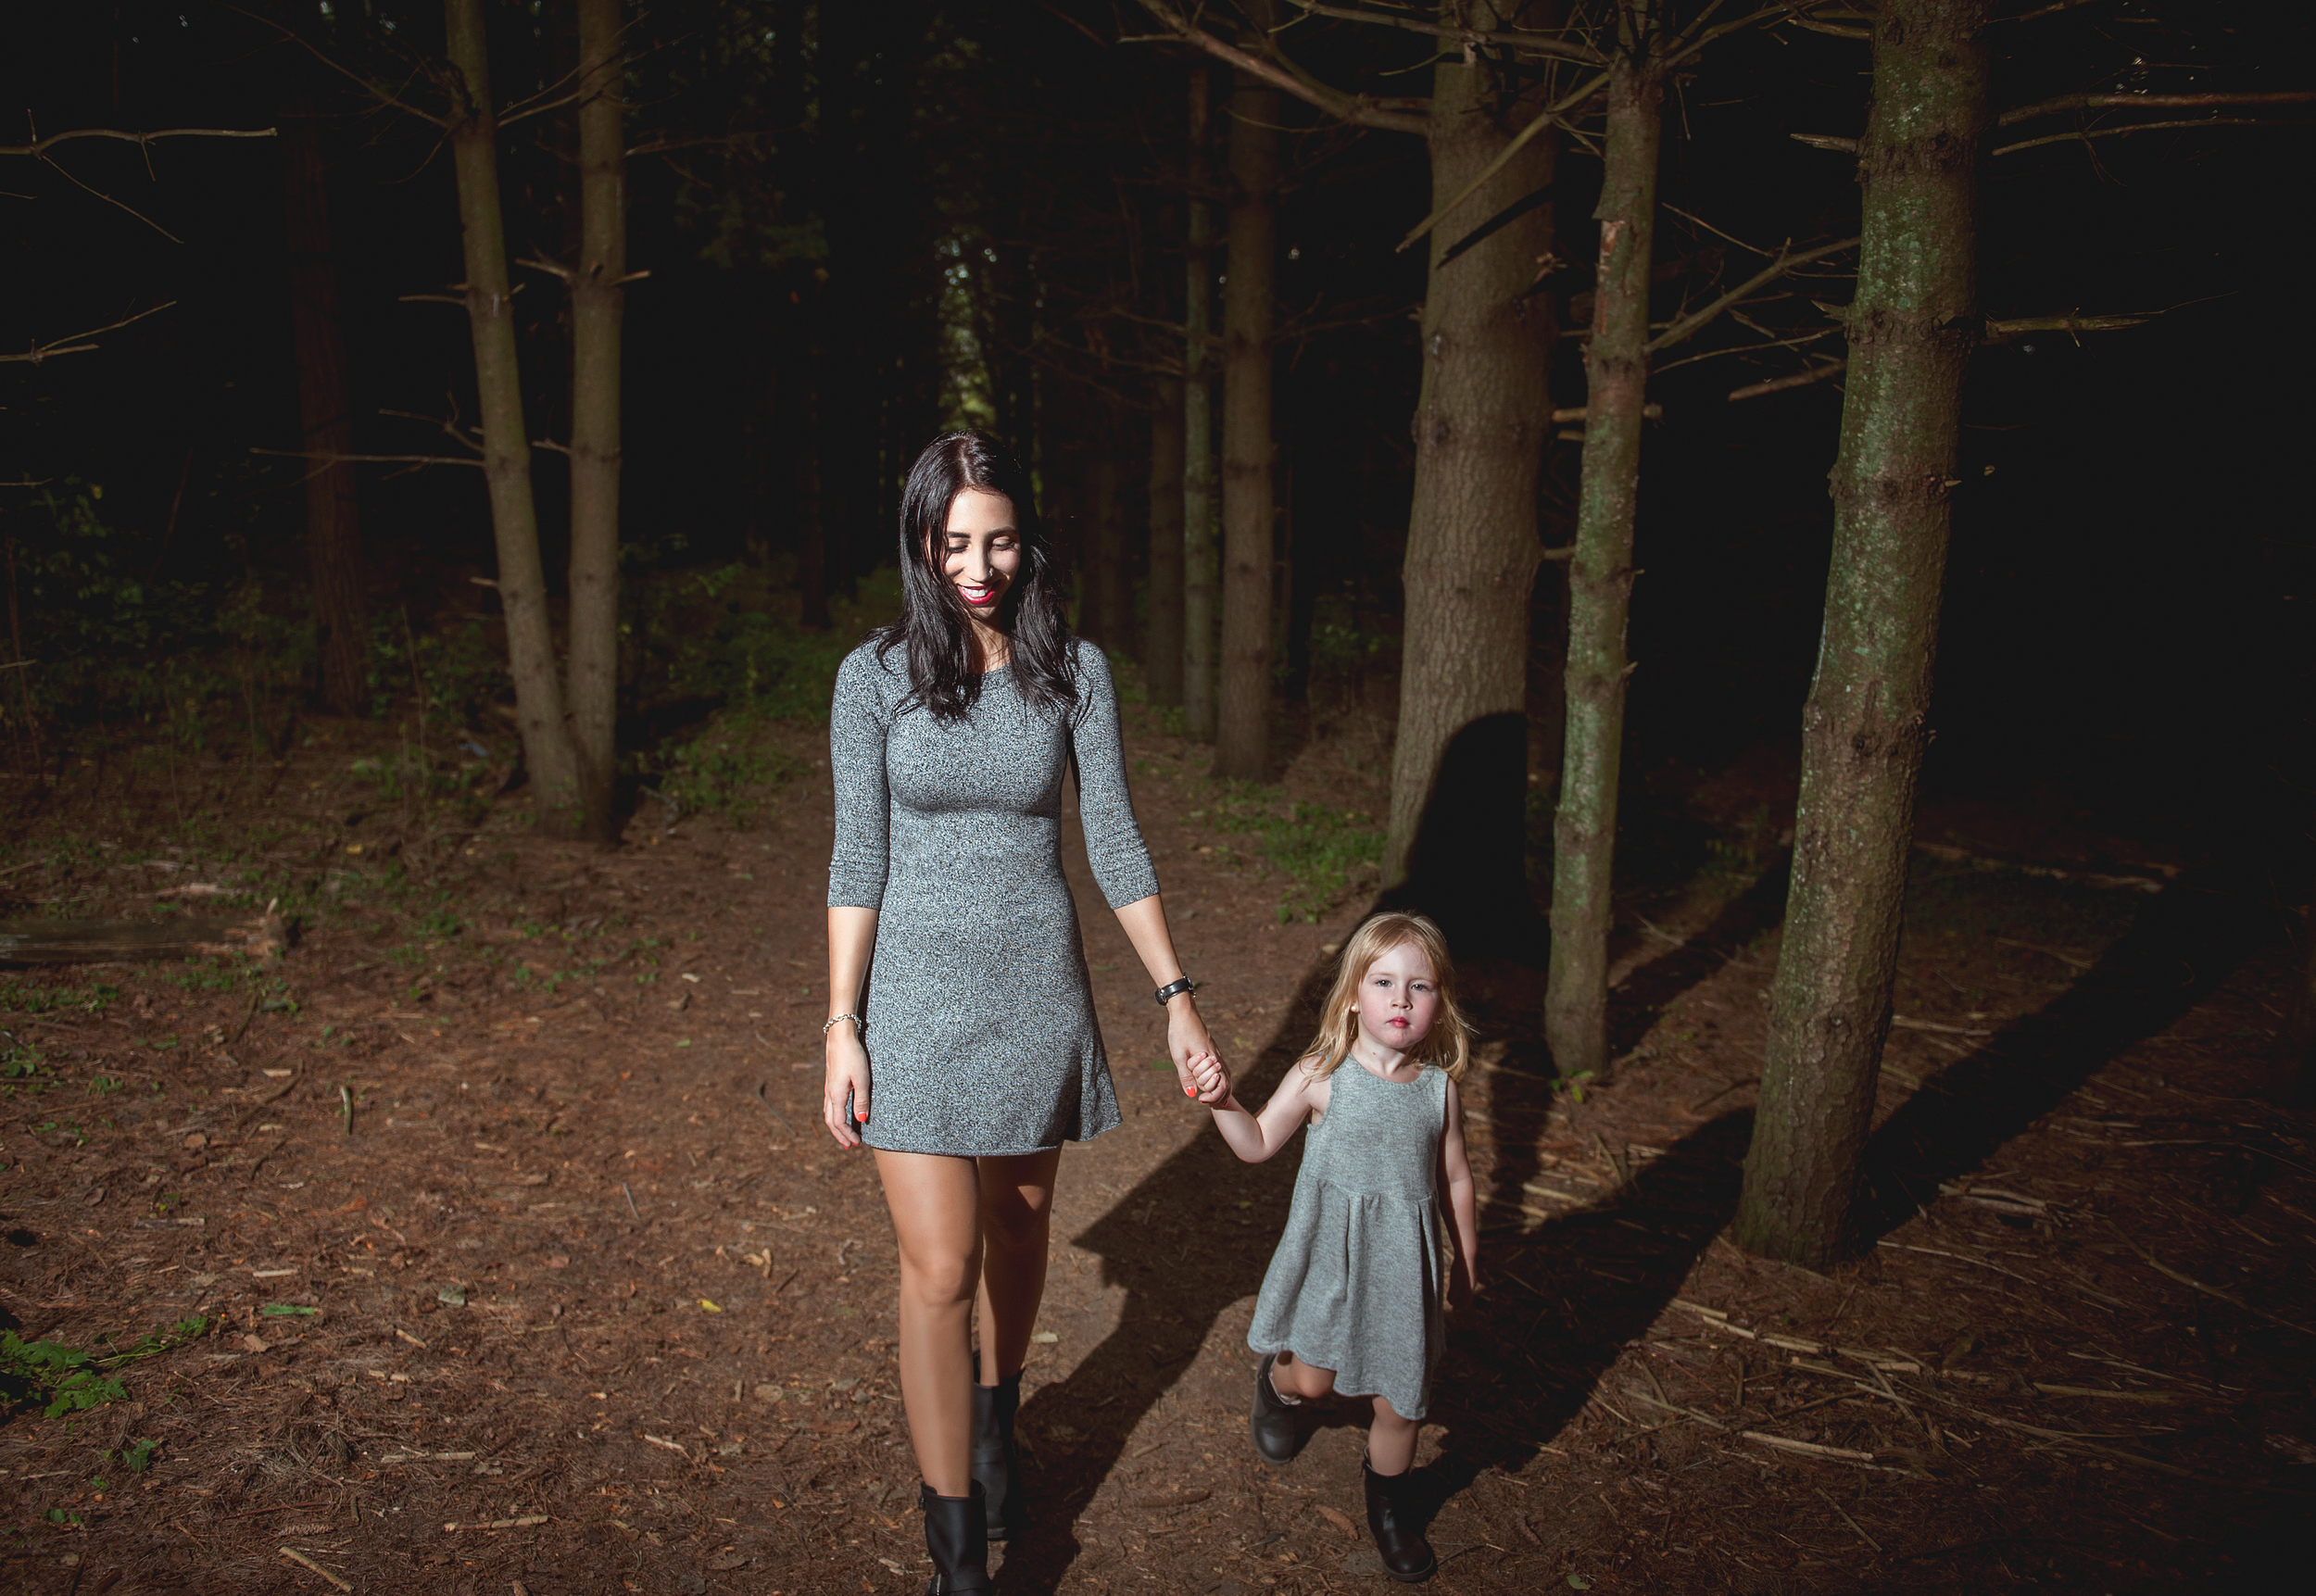 These trails were a little dark and kind of creepy, so we decided to have some fun with it and do some hard lighting to give that dark, moody, shadow feel to the image.